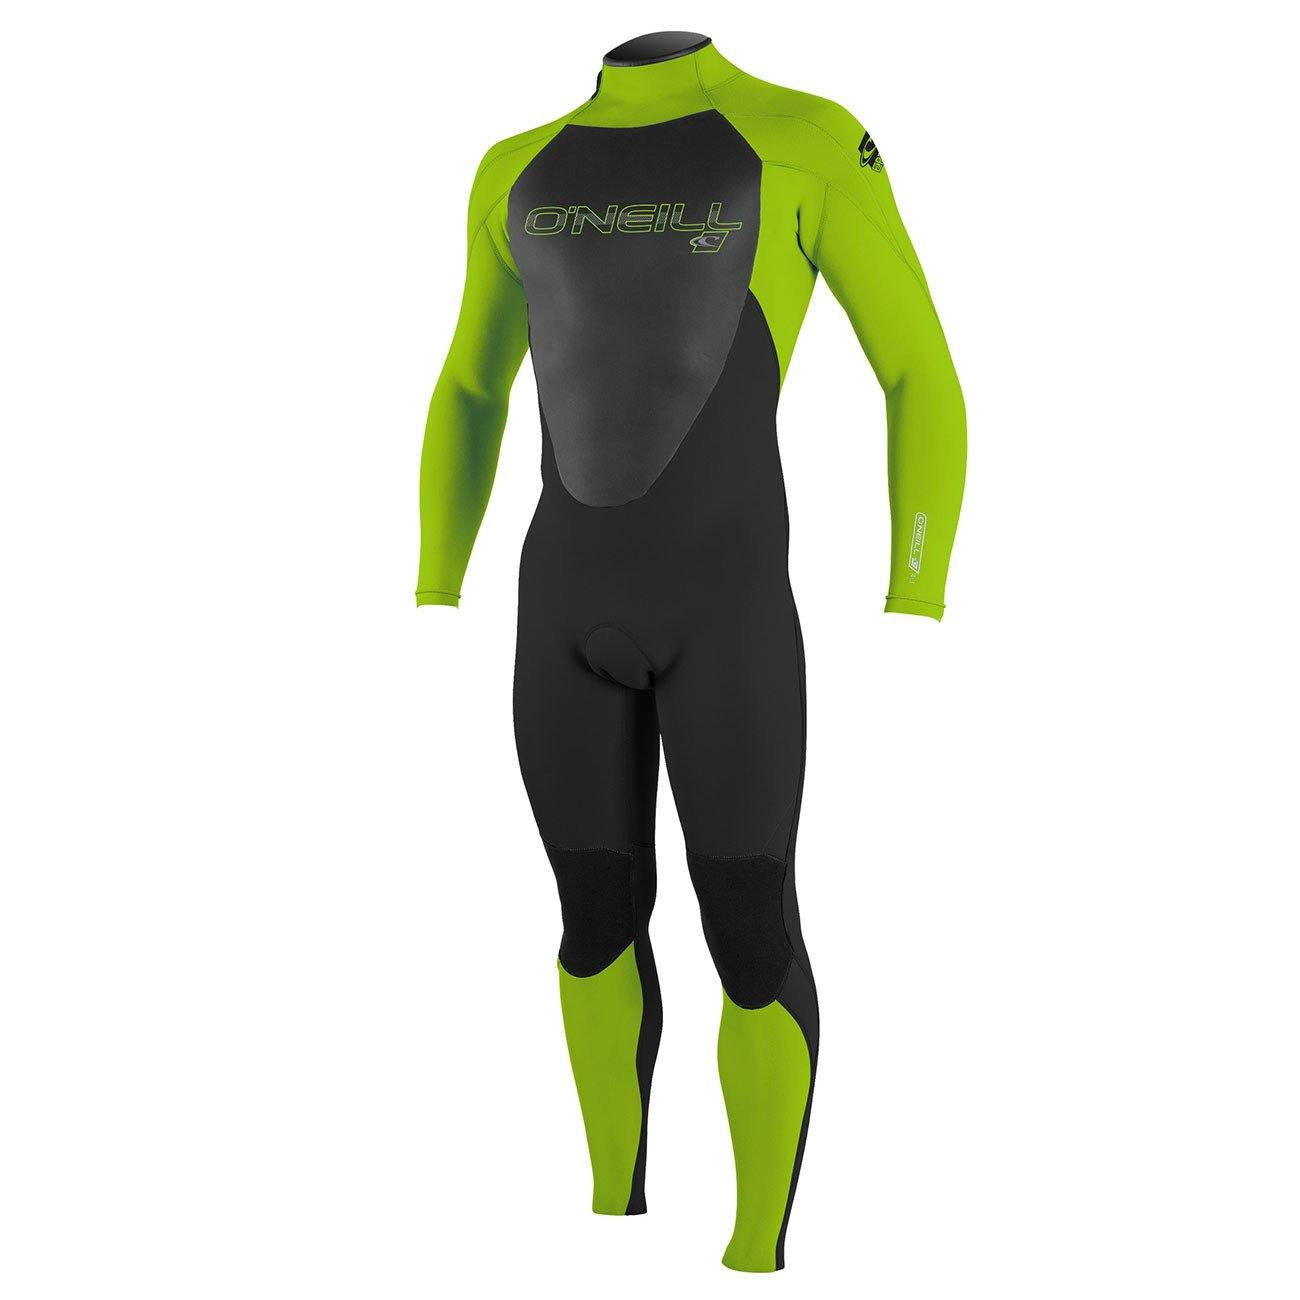 O'Neill Epic 4/3 Full Wetsuit - Back Zip - Urban Surf